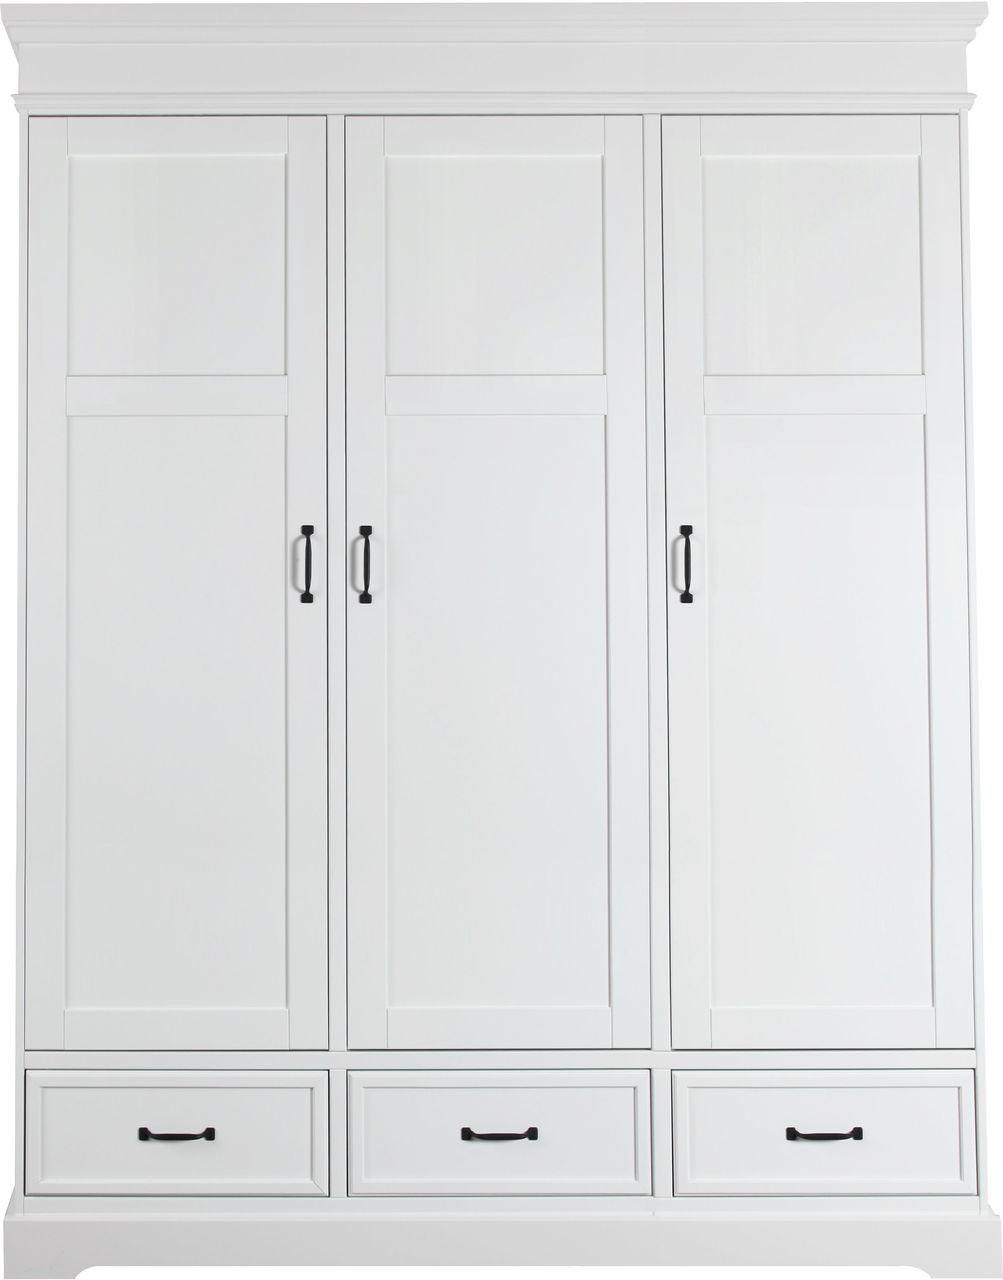 kidsmill kleiderschrank 3 t rig savona ohne kreuz wei kidsmill savona kidsmill. Black Bedroom Furniture Sets. Home Design Ideas